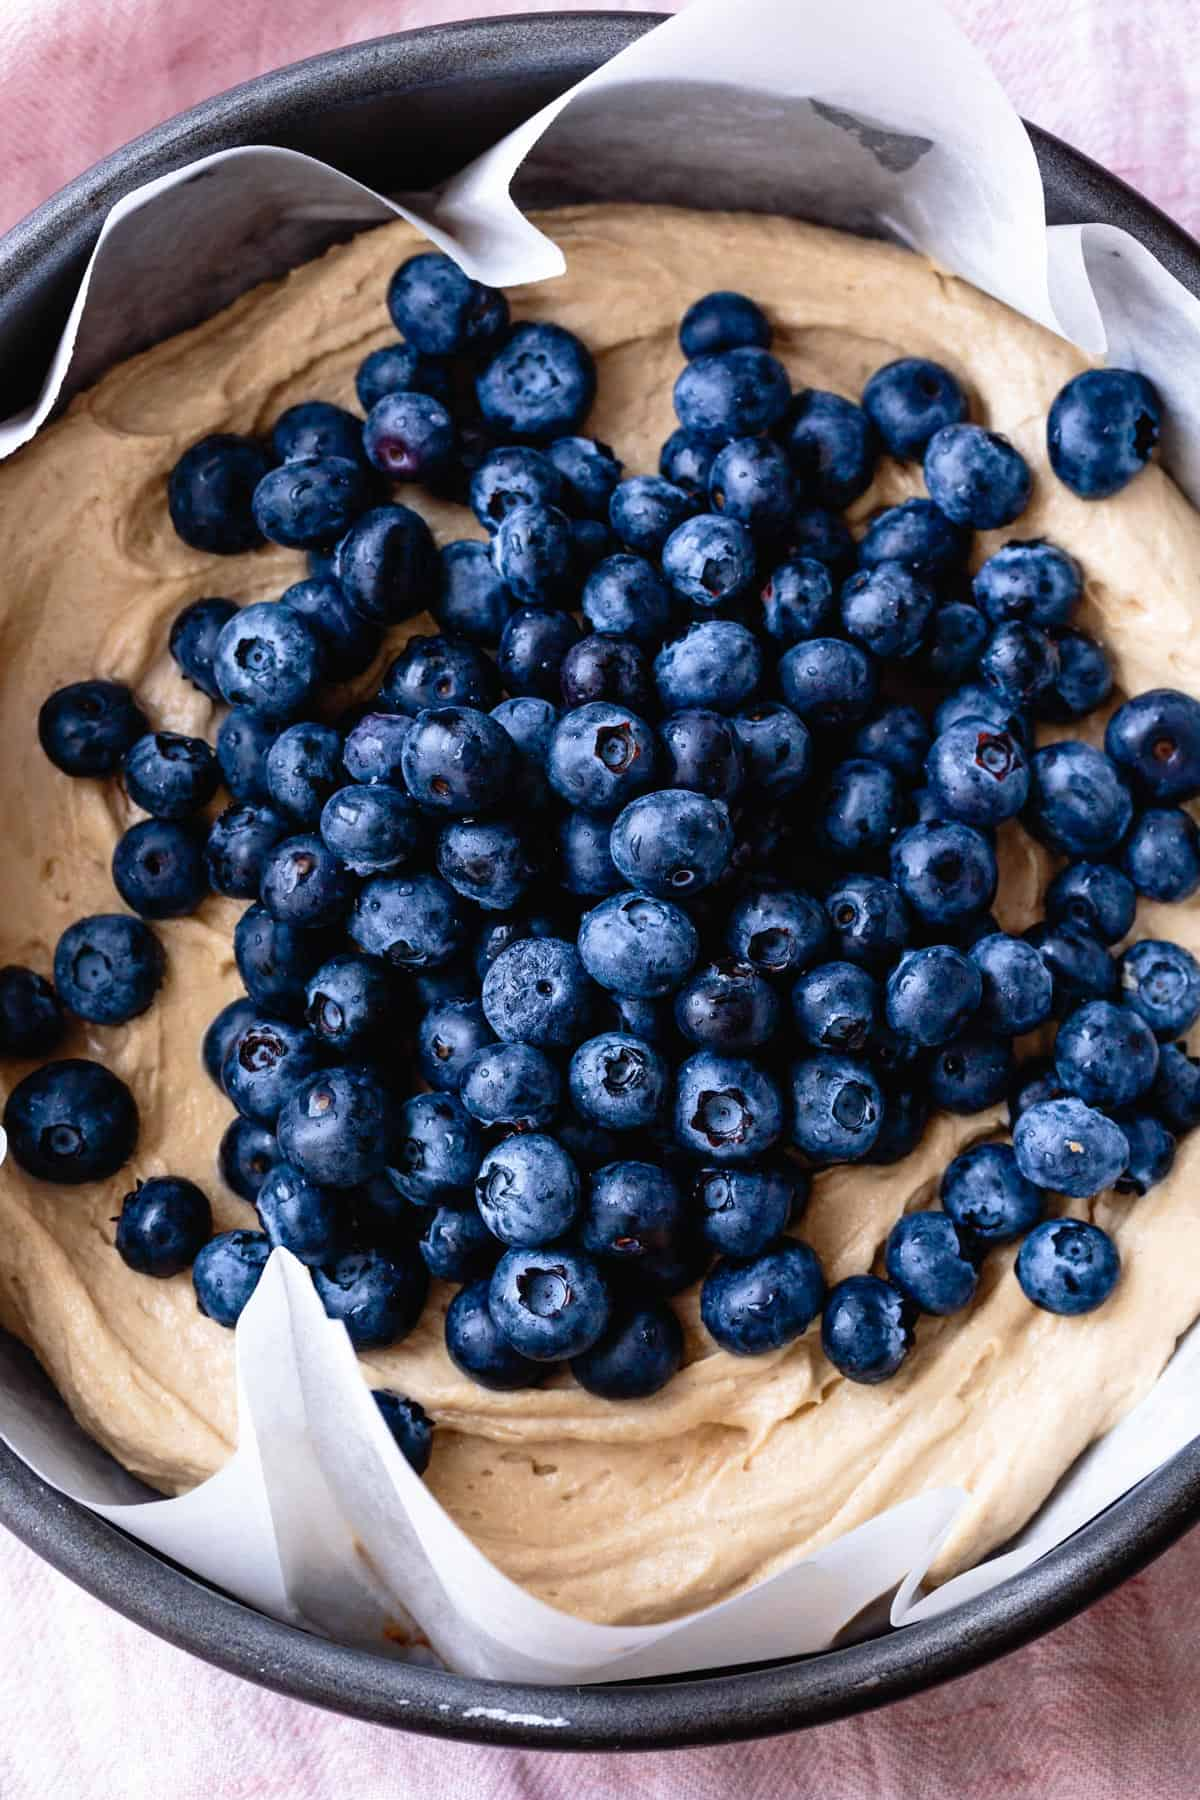 Coffee Cake batter with blueberries for Gluten-Free Blueberry Dessert